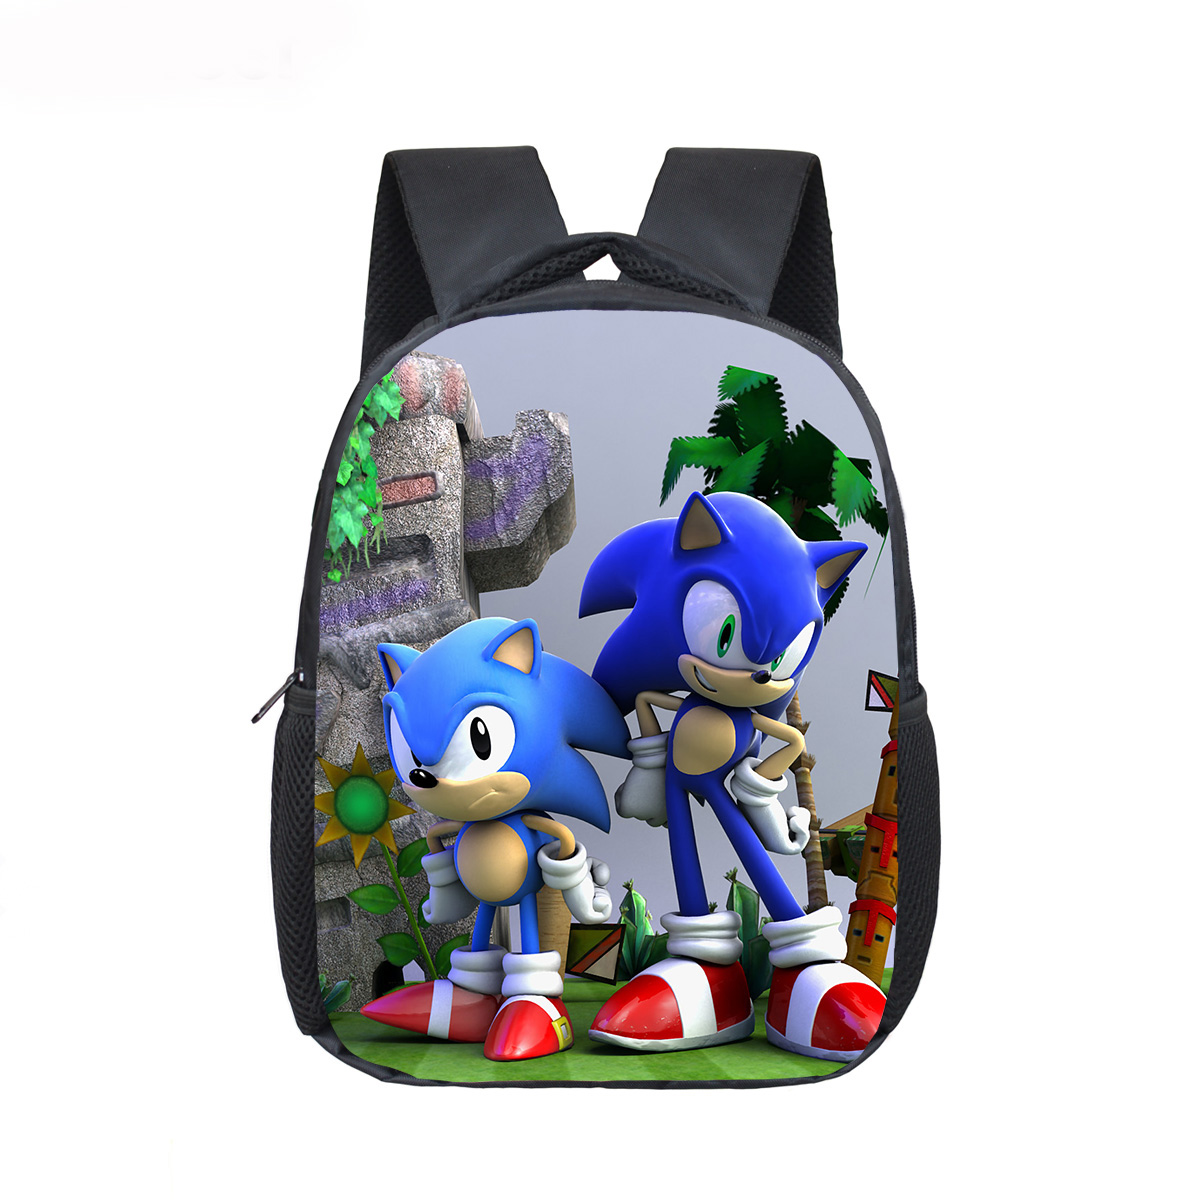 12 Inch Mario Bros Sonic Boom Hedgehogs Kindergarten School Bags Bookbags Children Baby Toddler Bag Kids Backpack Gift